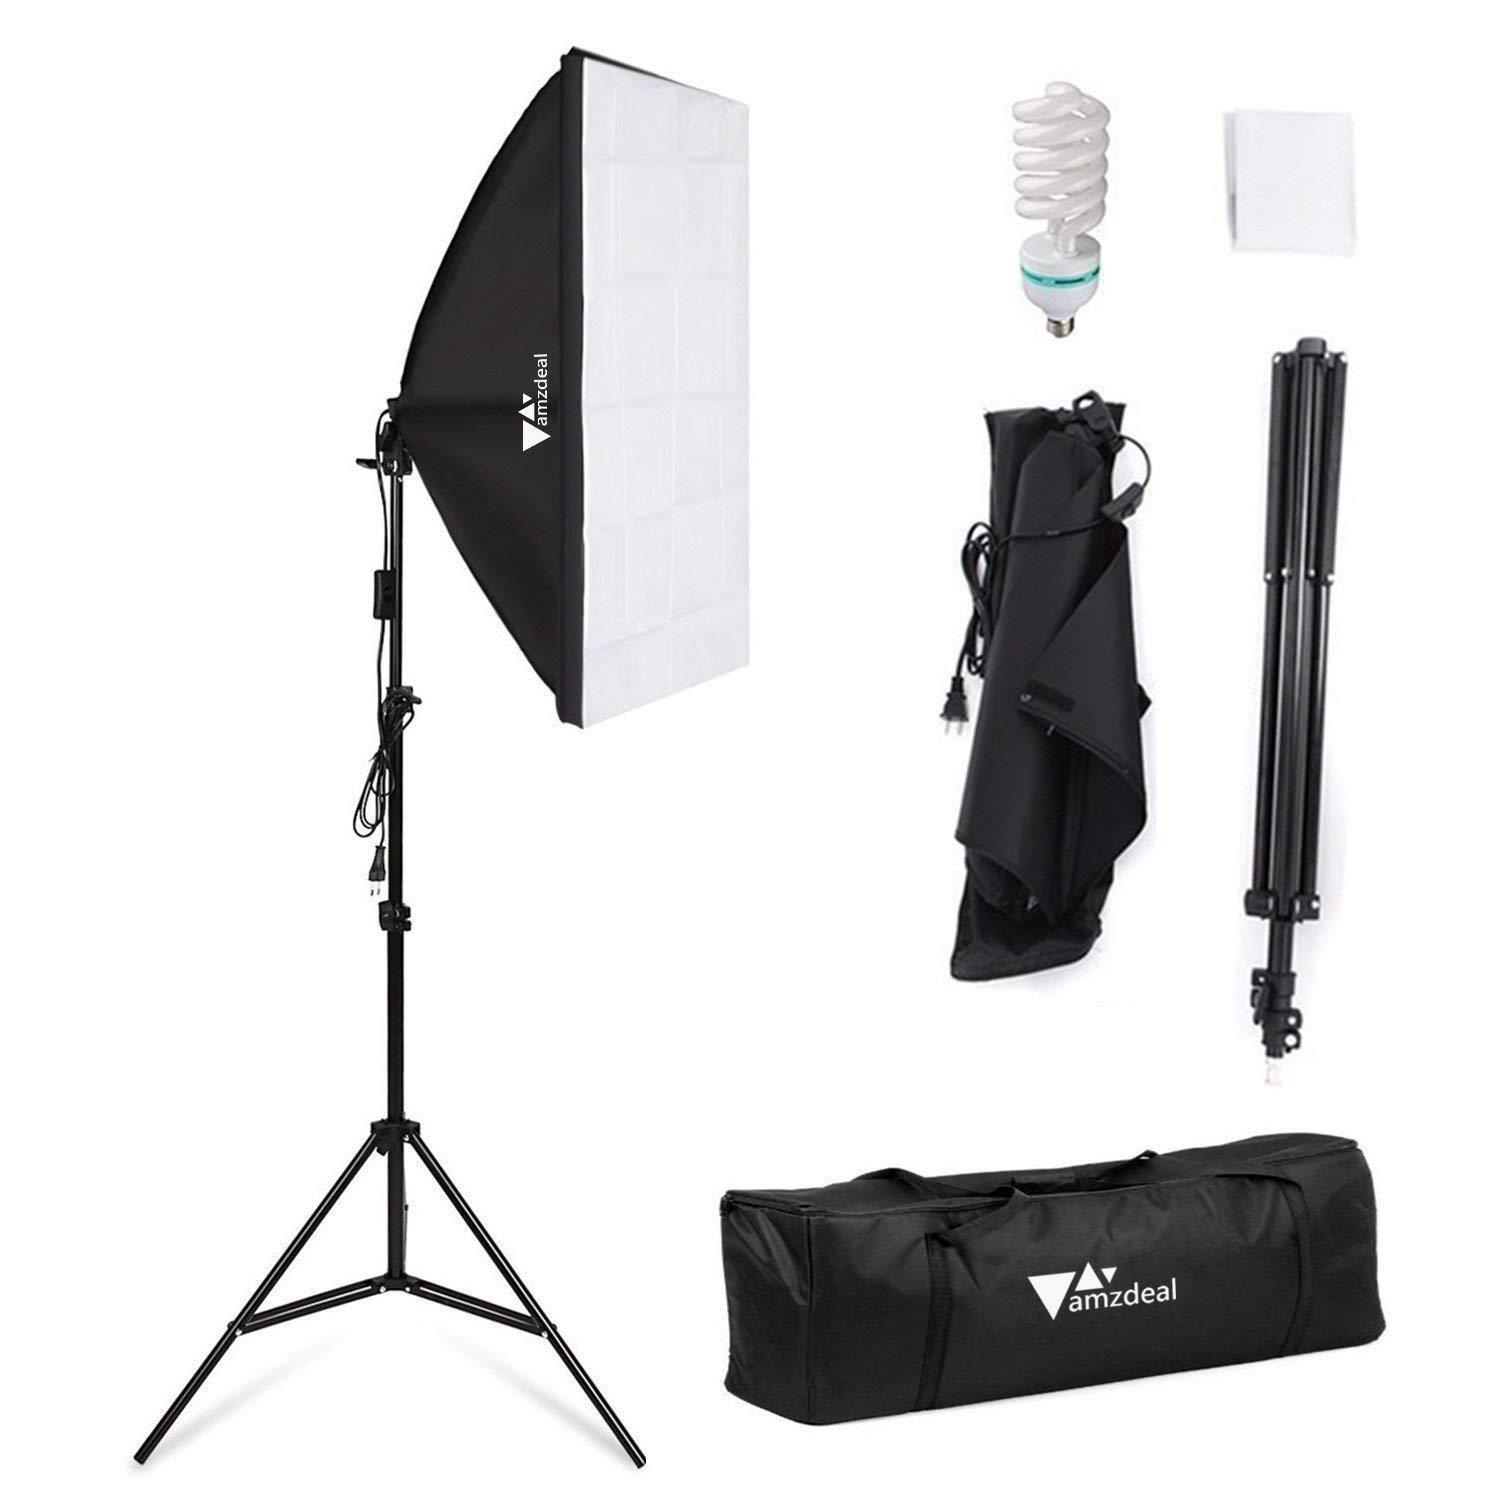 Amzdeal Softbox Lighting Kit Photography Studio Lighting Kit 20'' x 28'' Soft Box Lights for Video Photo with 85W Bulbs 79inch Stand Carry Bag